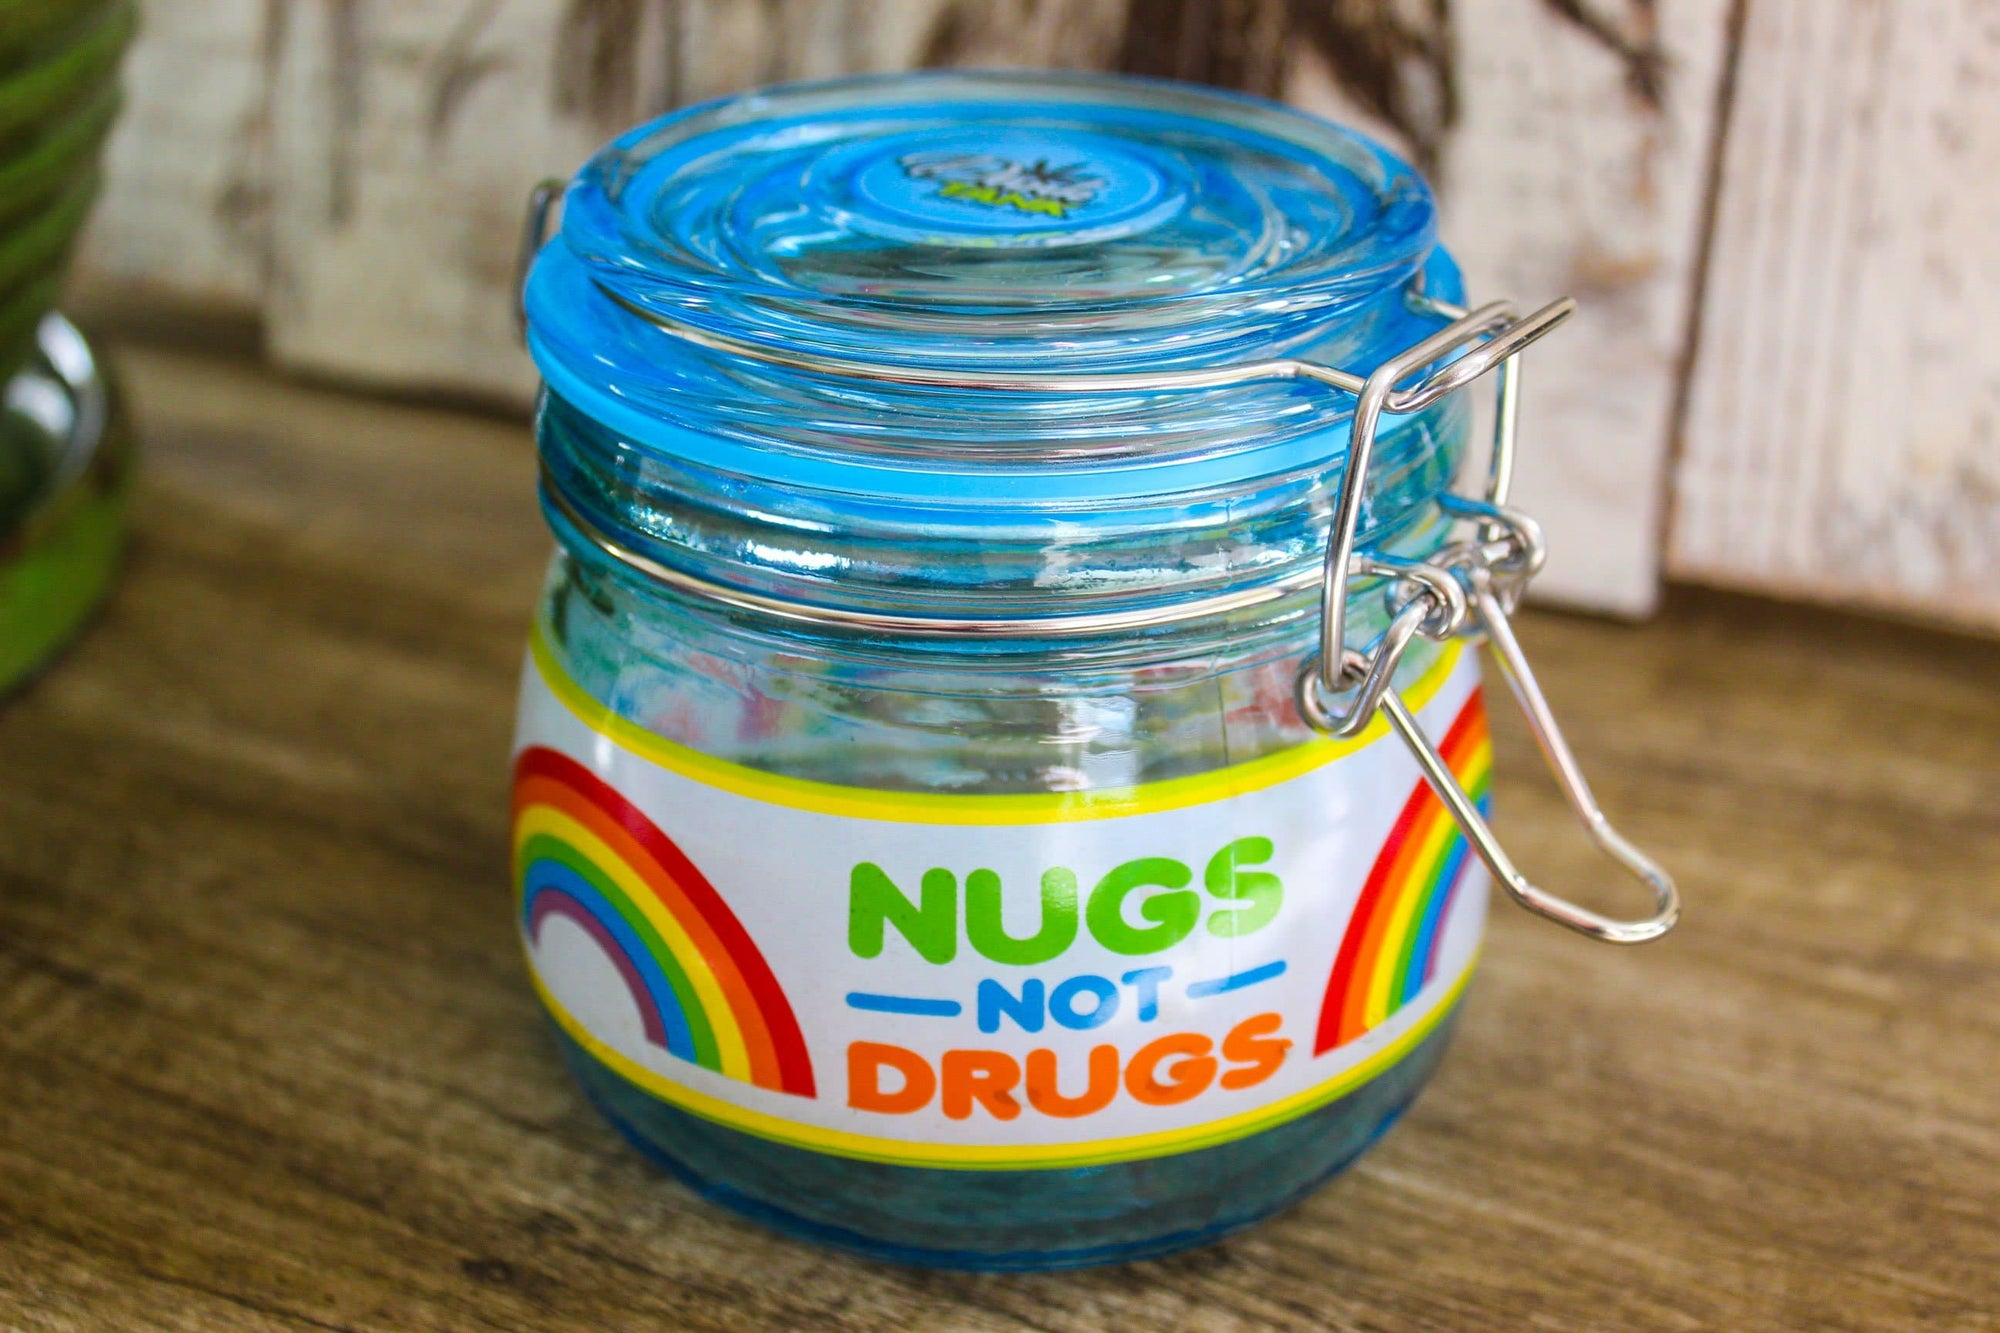 Nugs Not Drugs Stash Jar